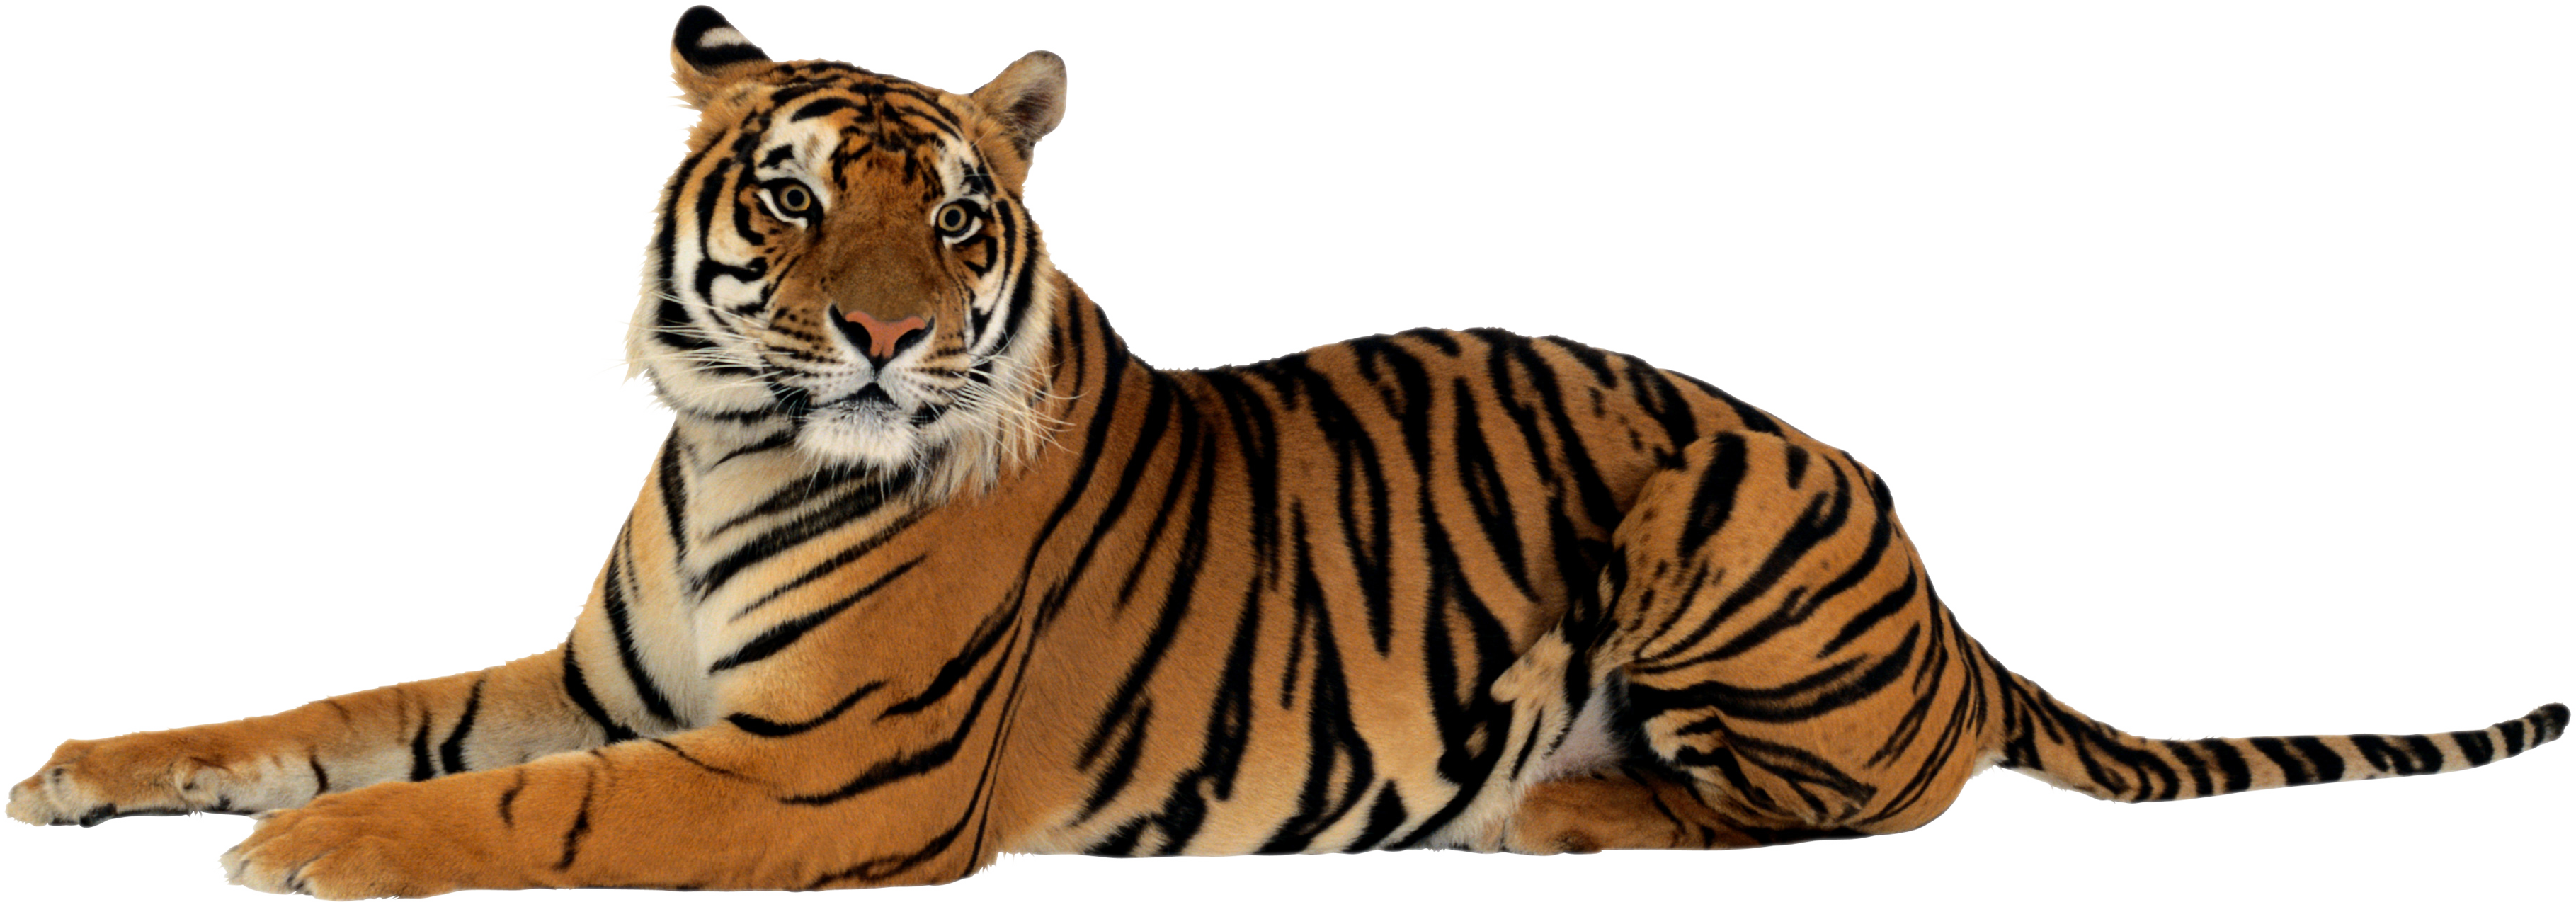 Tiger PNG - Animal HD PNG